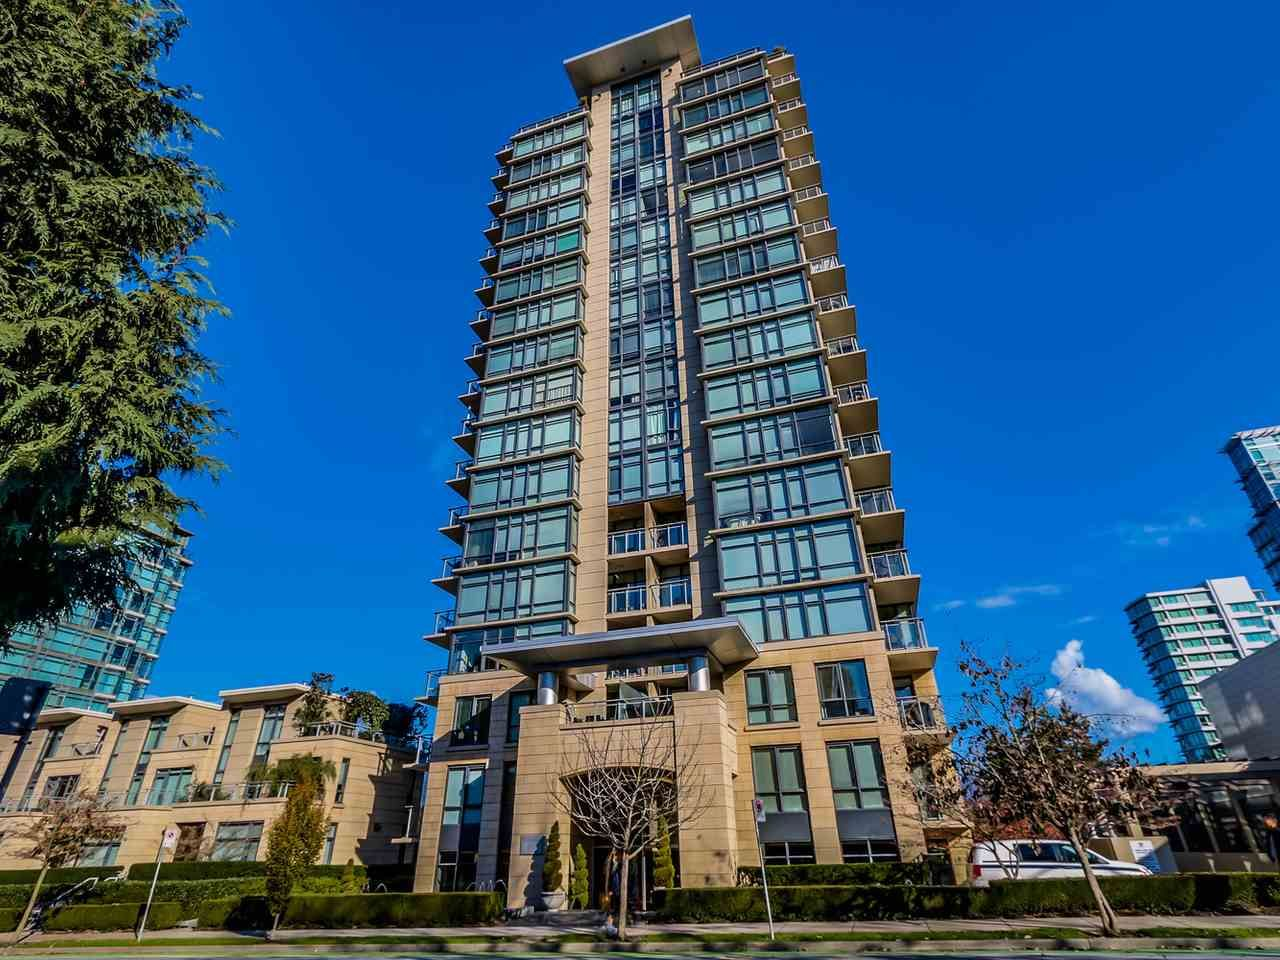 Main Photo: 1502 1863 ALBERNI STREET in : West End VW Condo for sale (Vancouver West)  : MLS®# R2014403